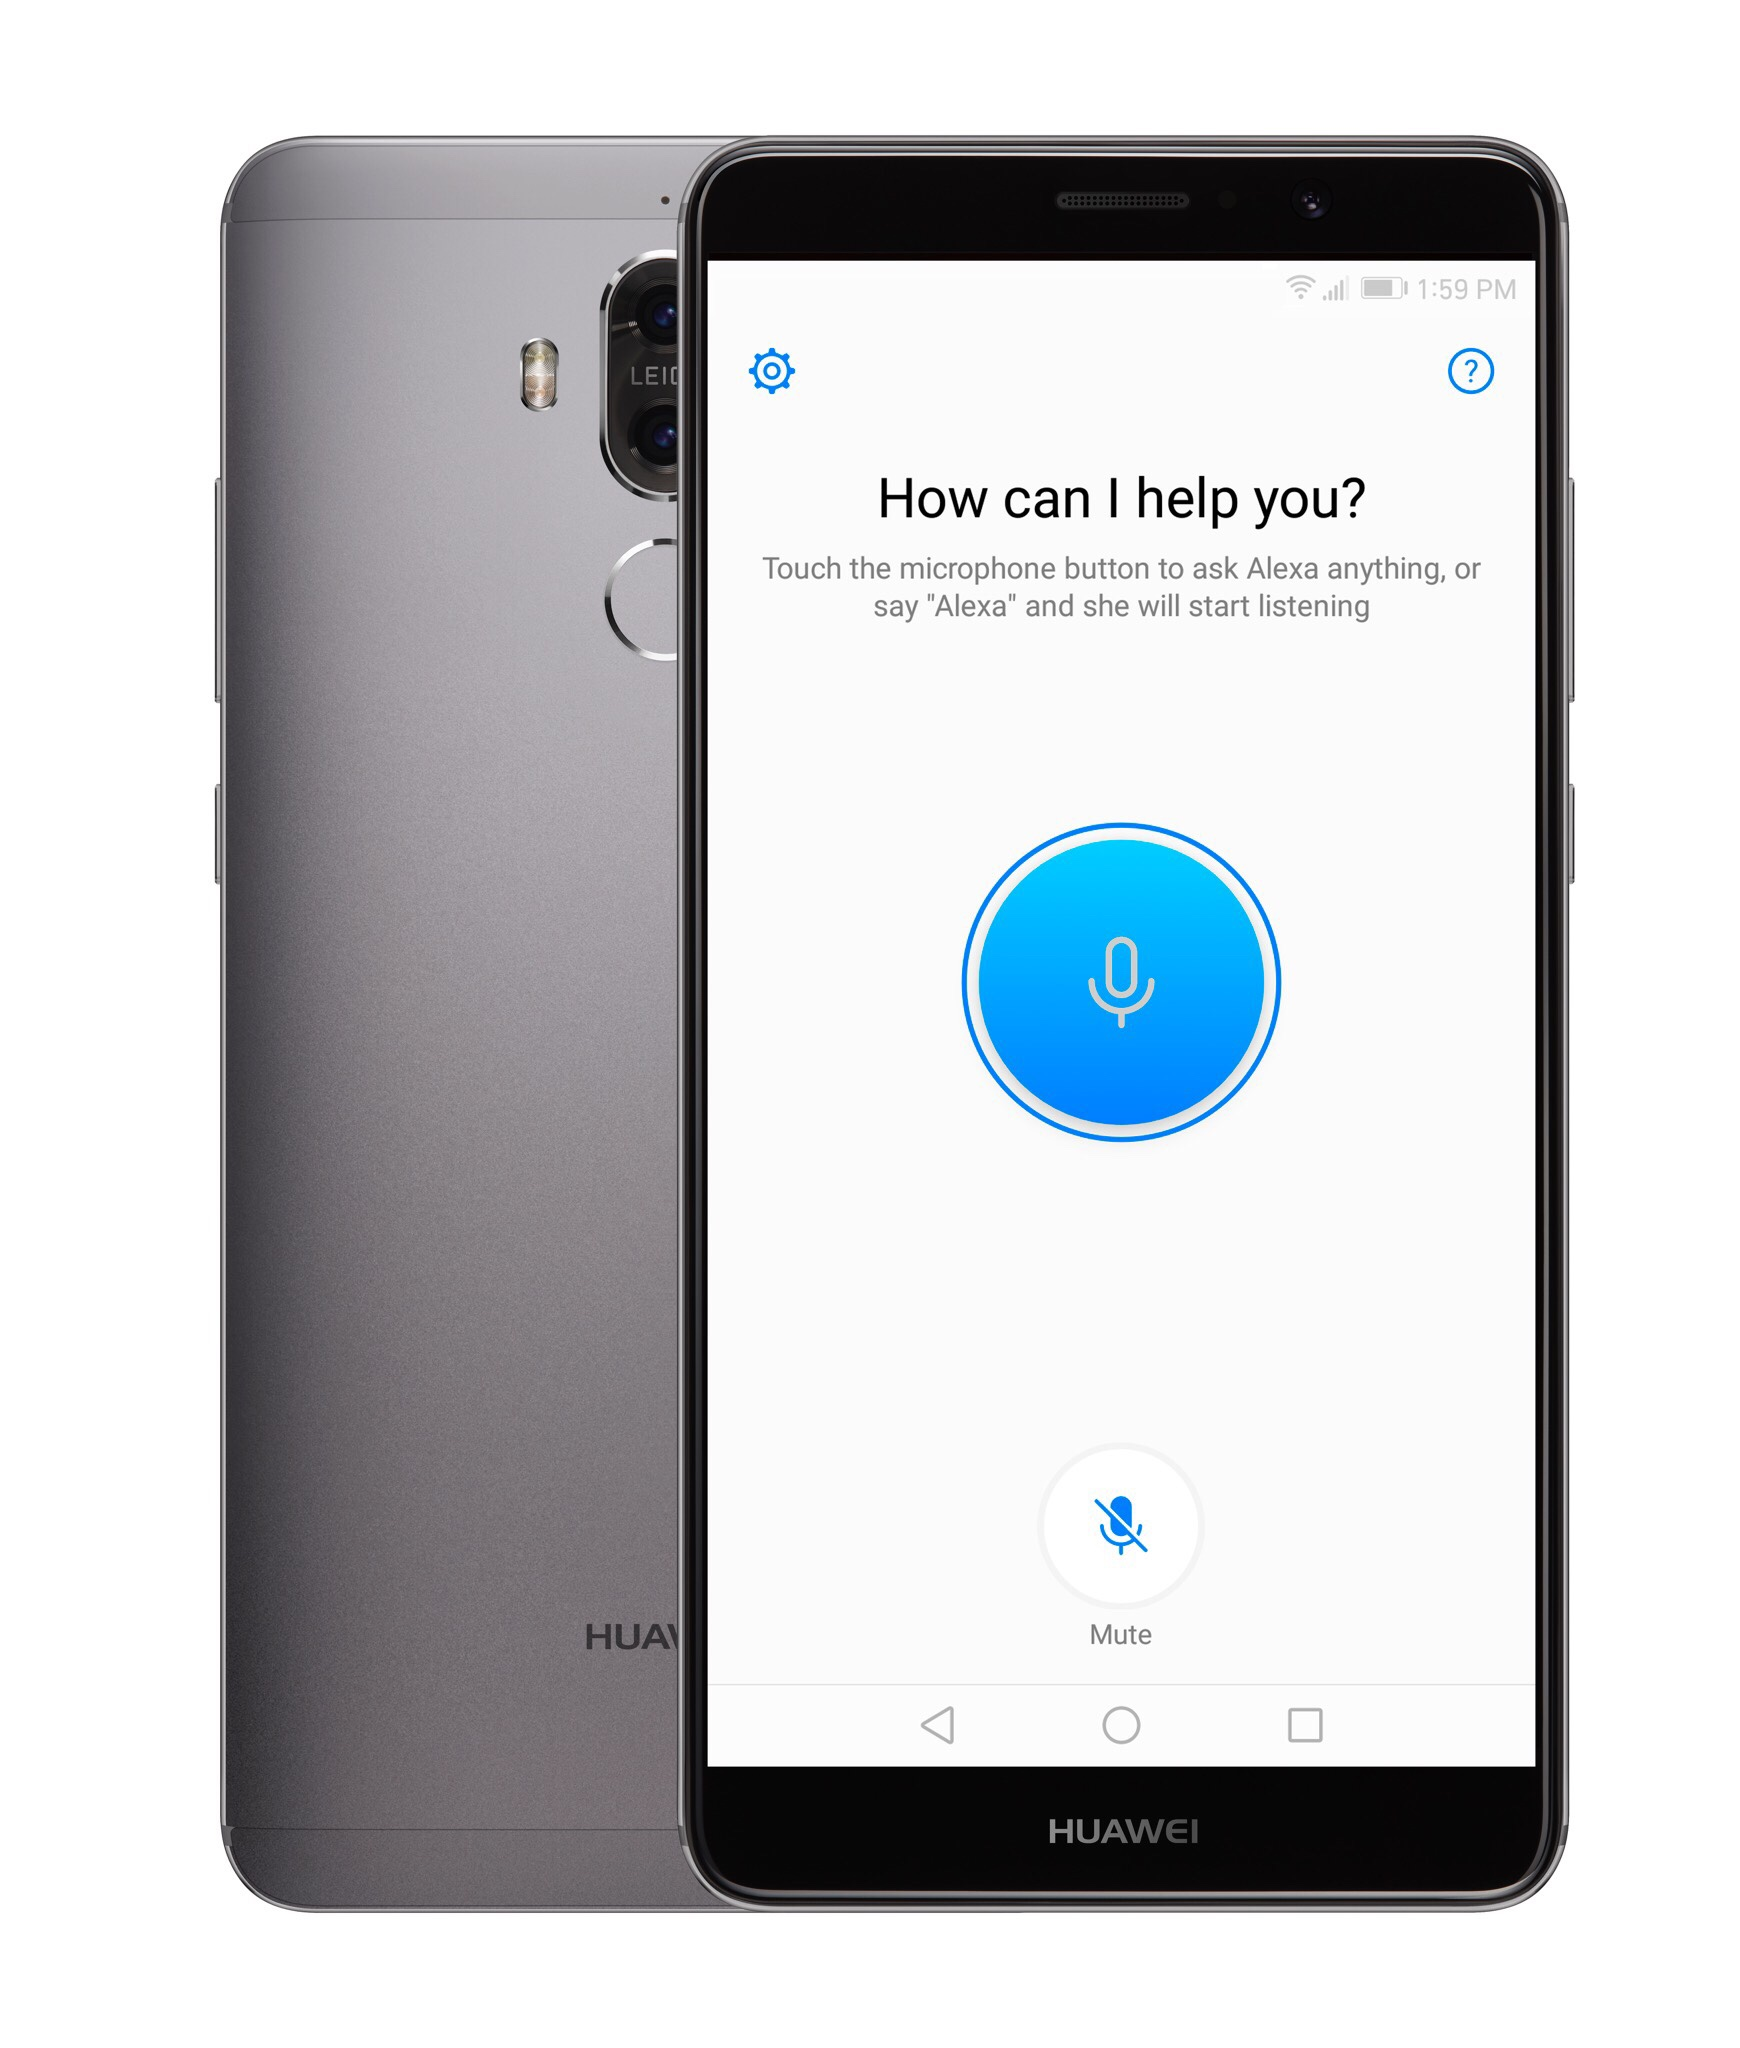 Huawei Alexa app ready to listen for a command.